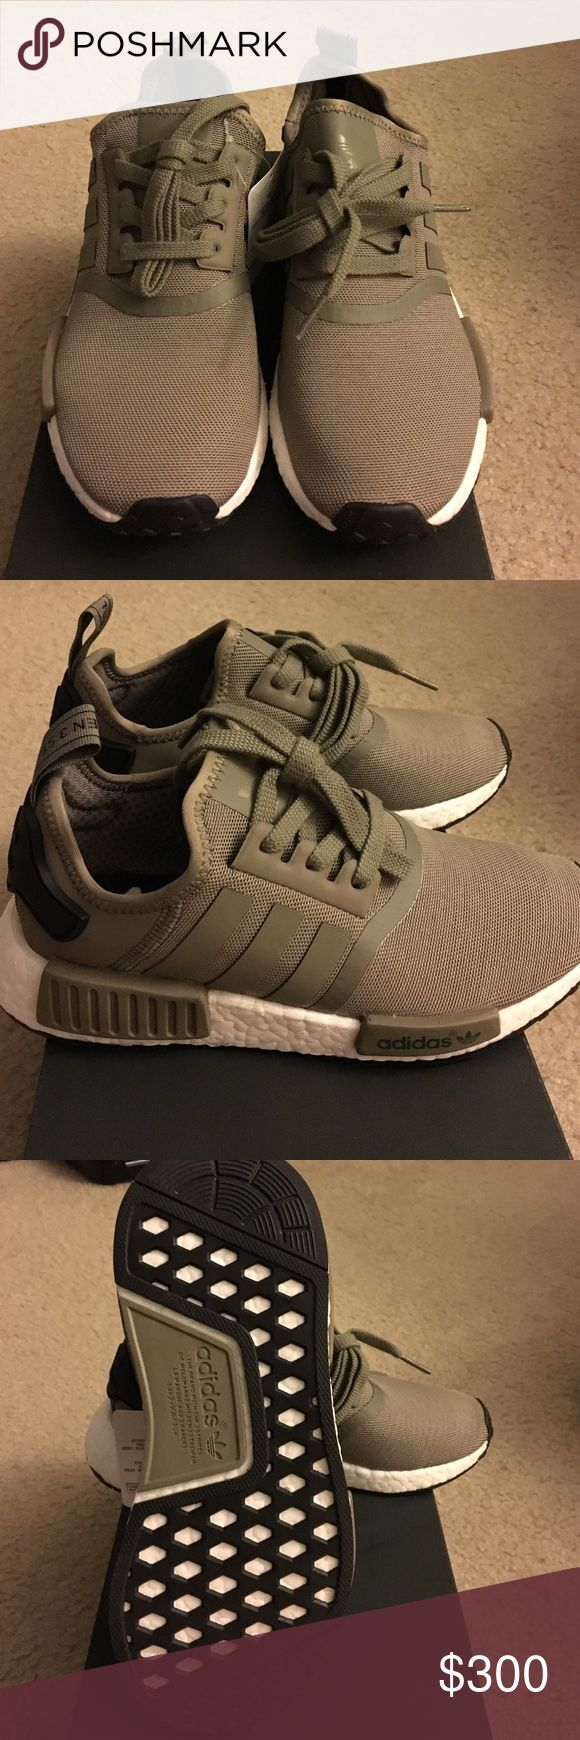 Adidas Nmd R1 Olive Cargo Brand new comes with original box, men's size 5, no trades Shoes Sneakers